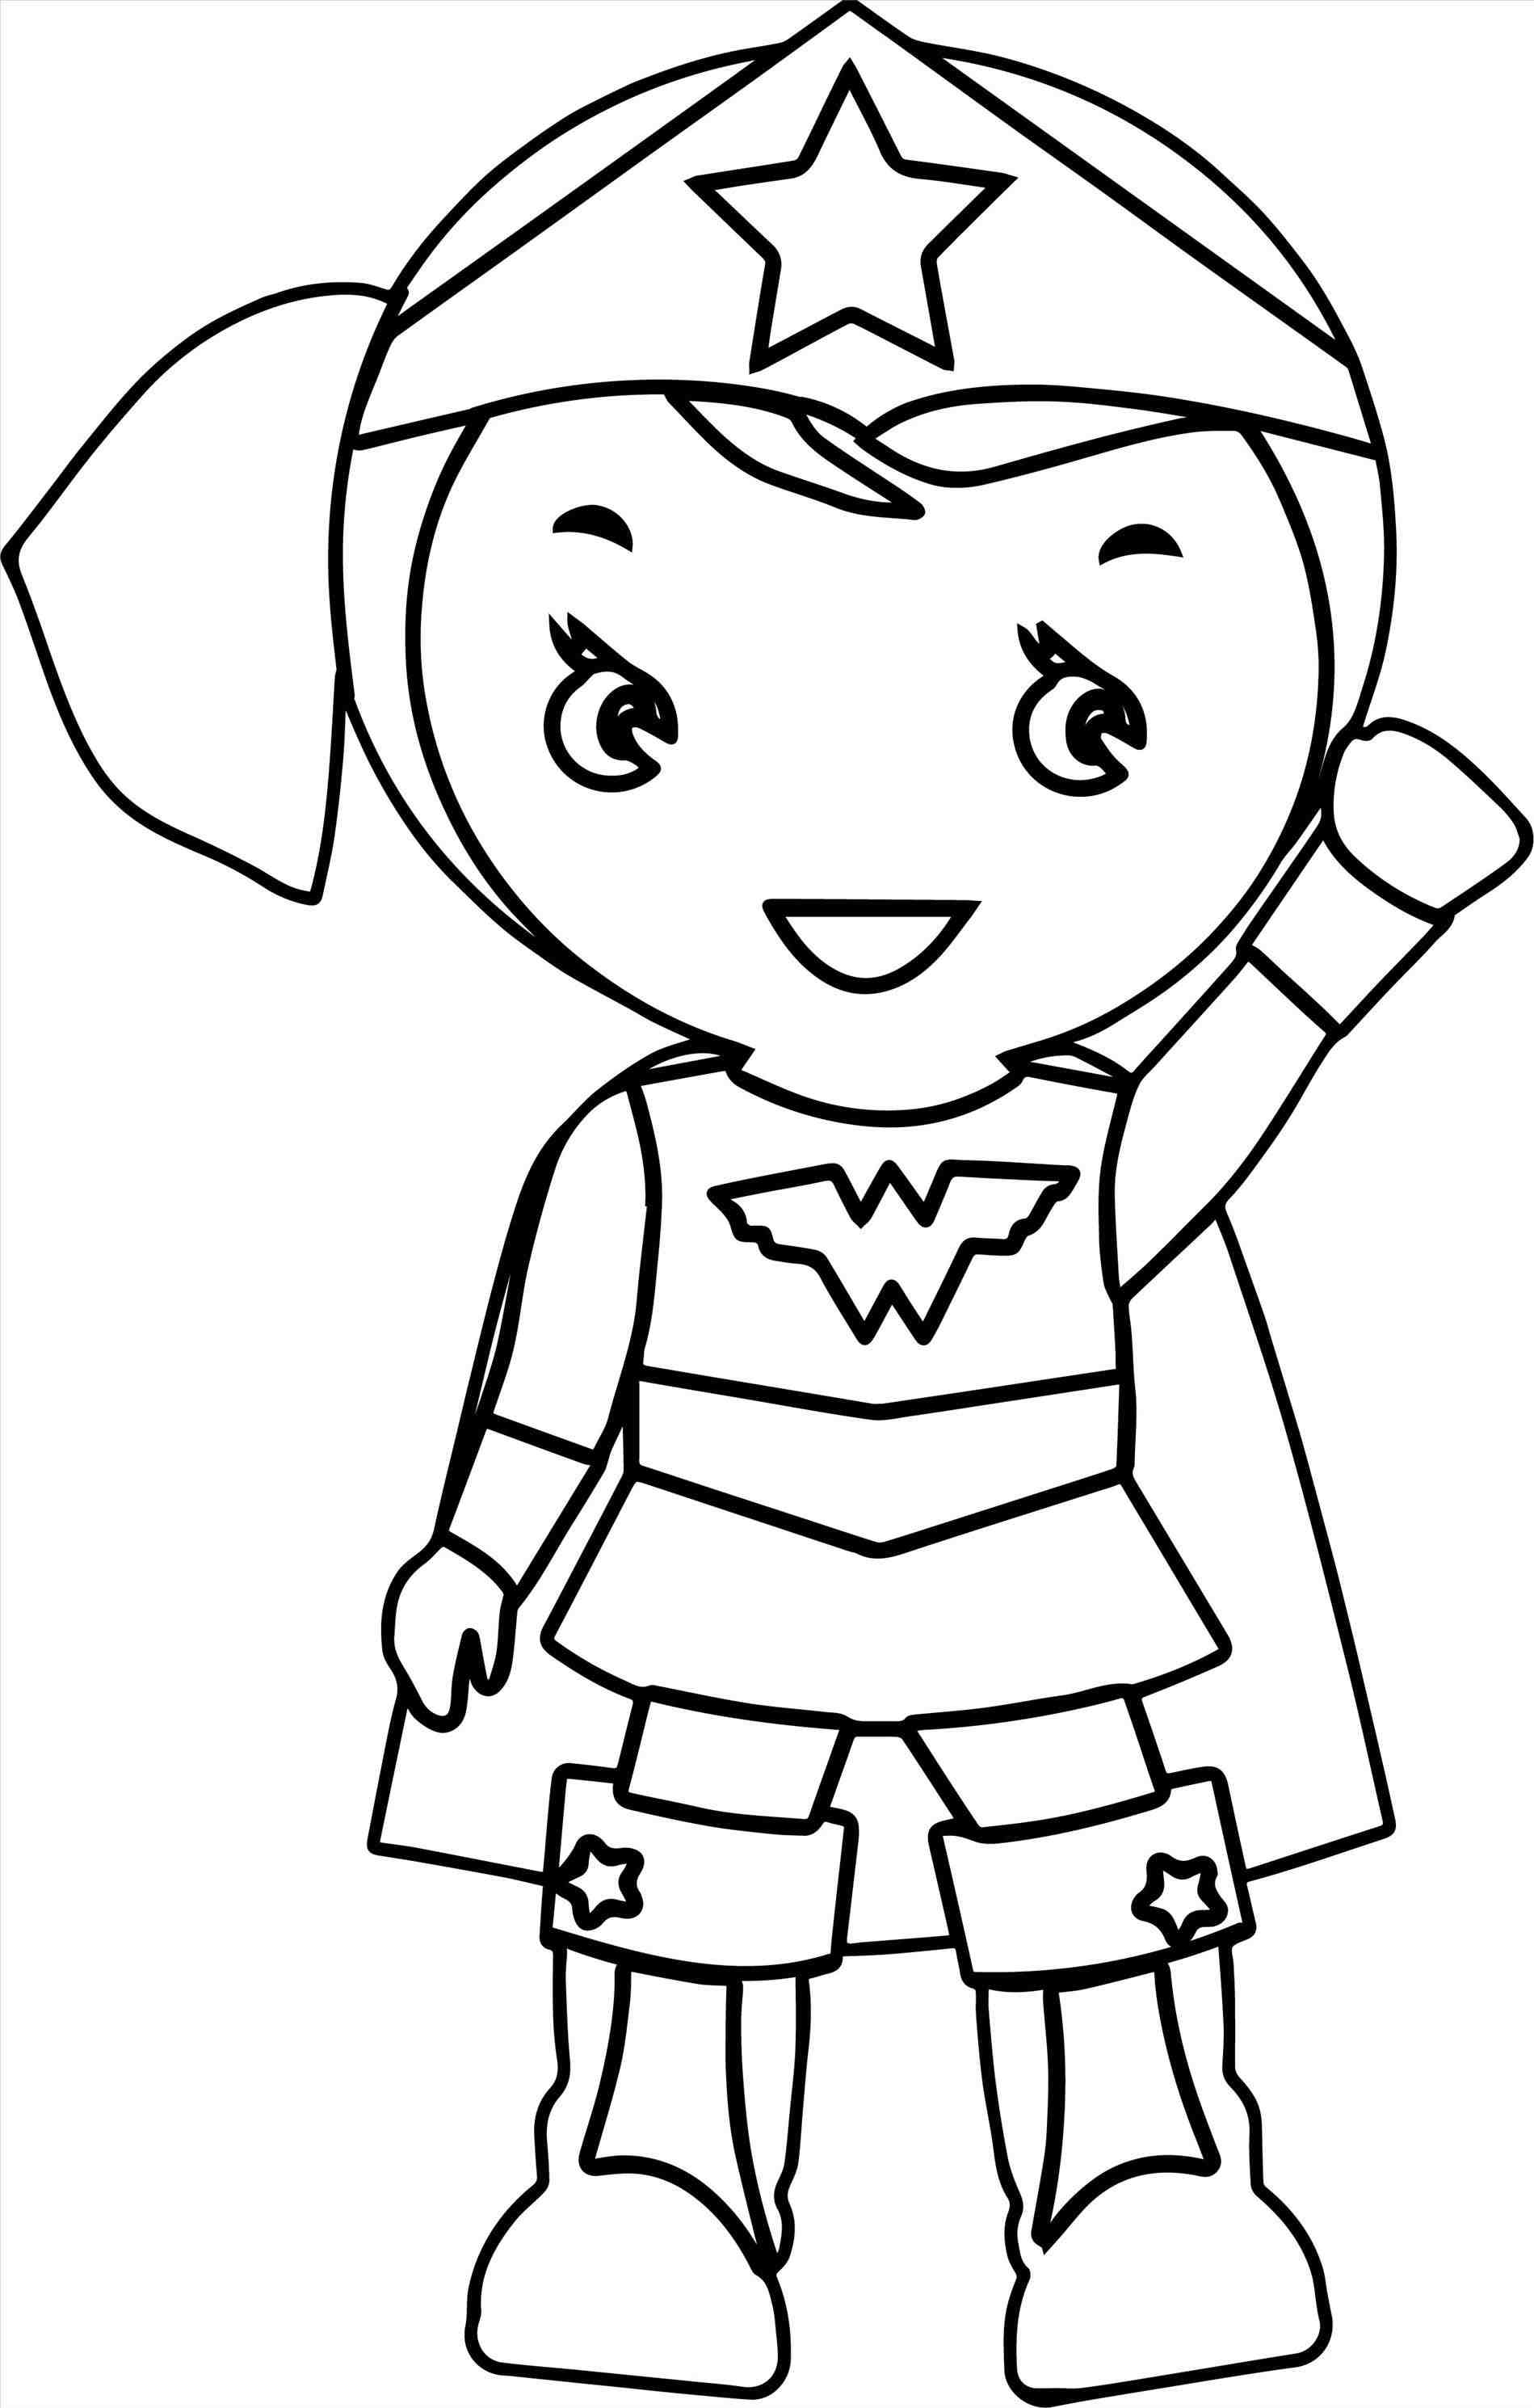 Wonder Woman Coloring Pages | Free download best Wonder Woman ...